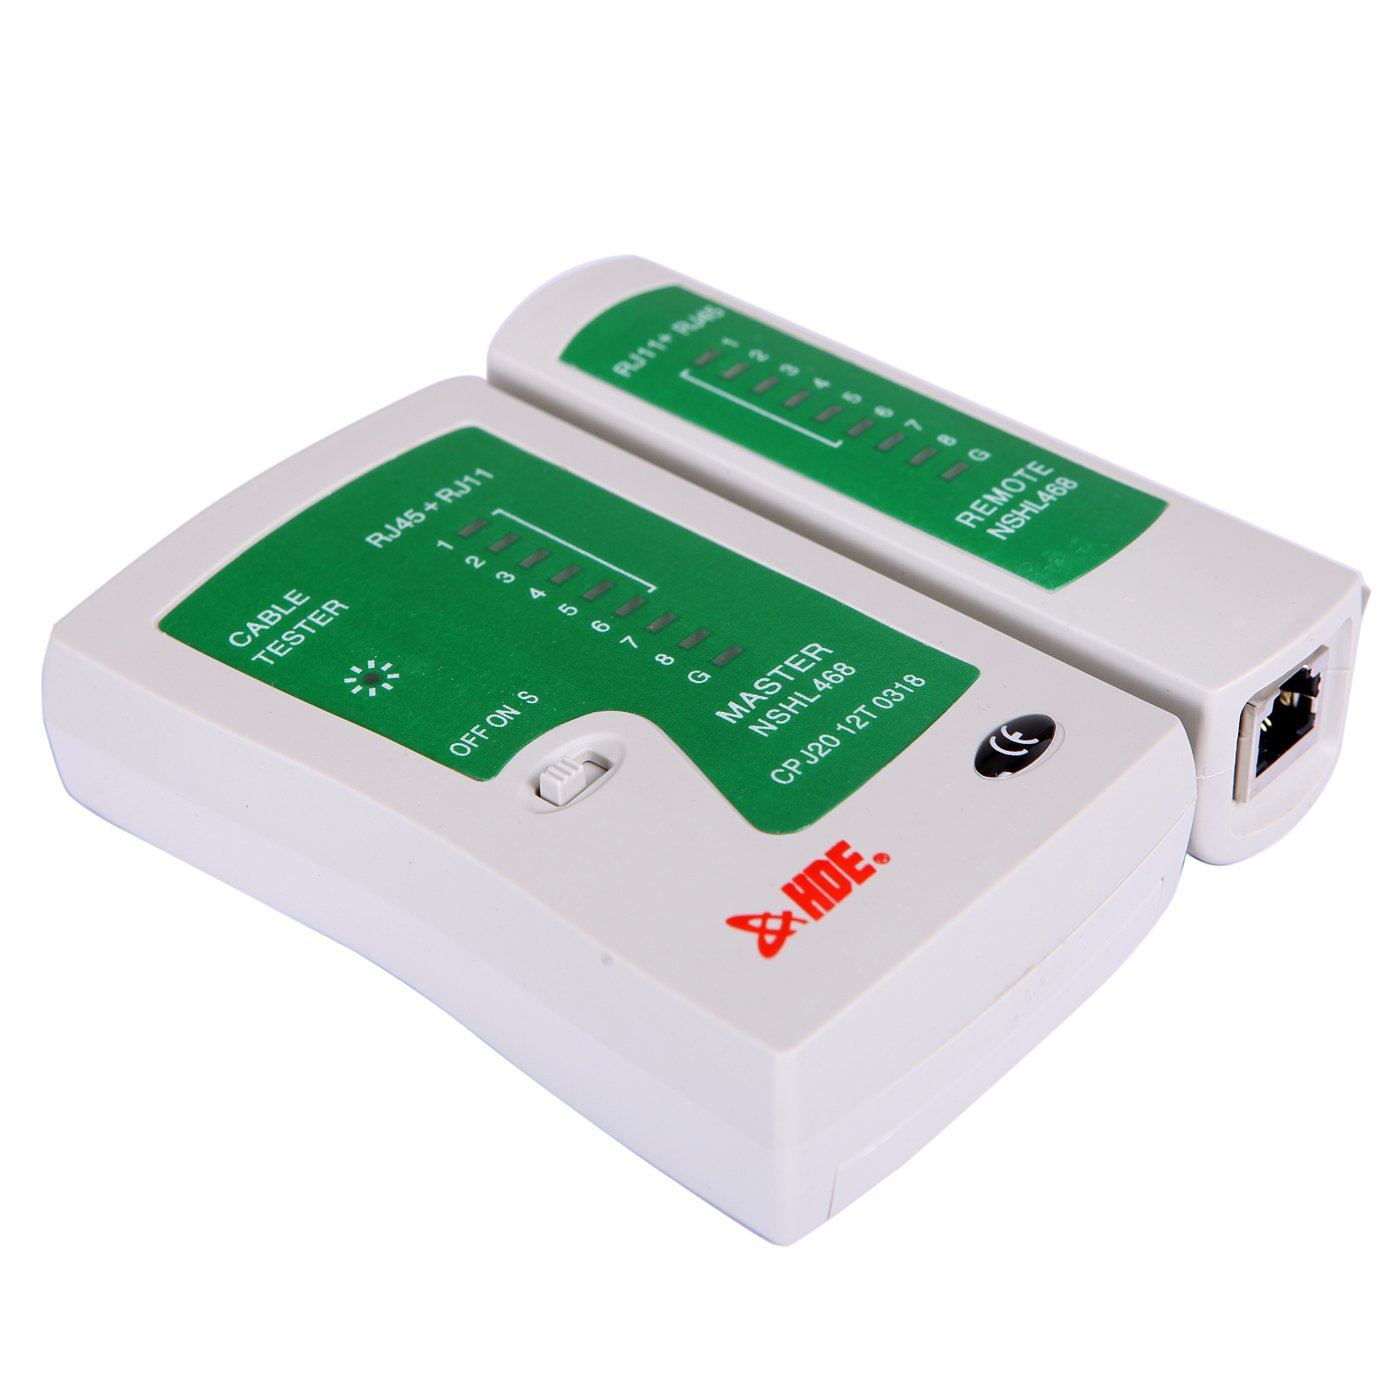 Hde Rj45 Rj11 Rj12 Cat5 Cat6 Utp Network Cable Tester Ether Wall Jack Wiring Additionally Also For Lan Phone Wire Test Tool Sports Outdoors